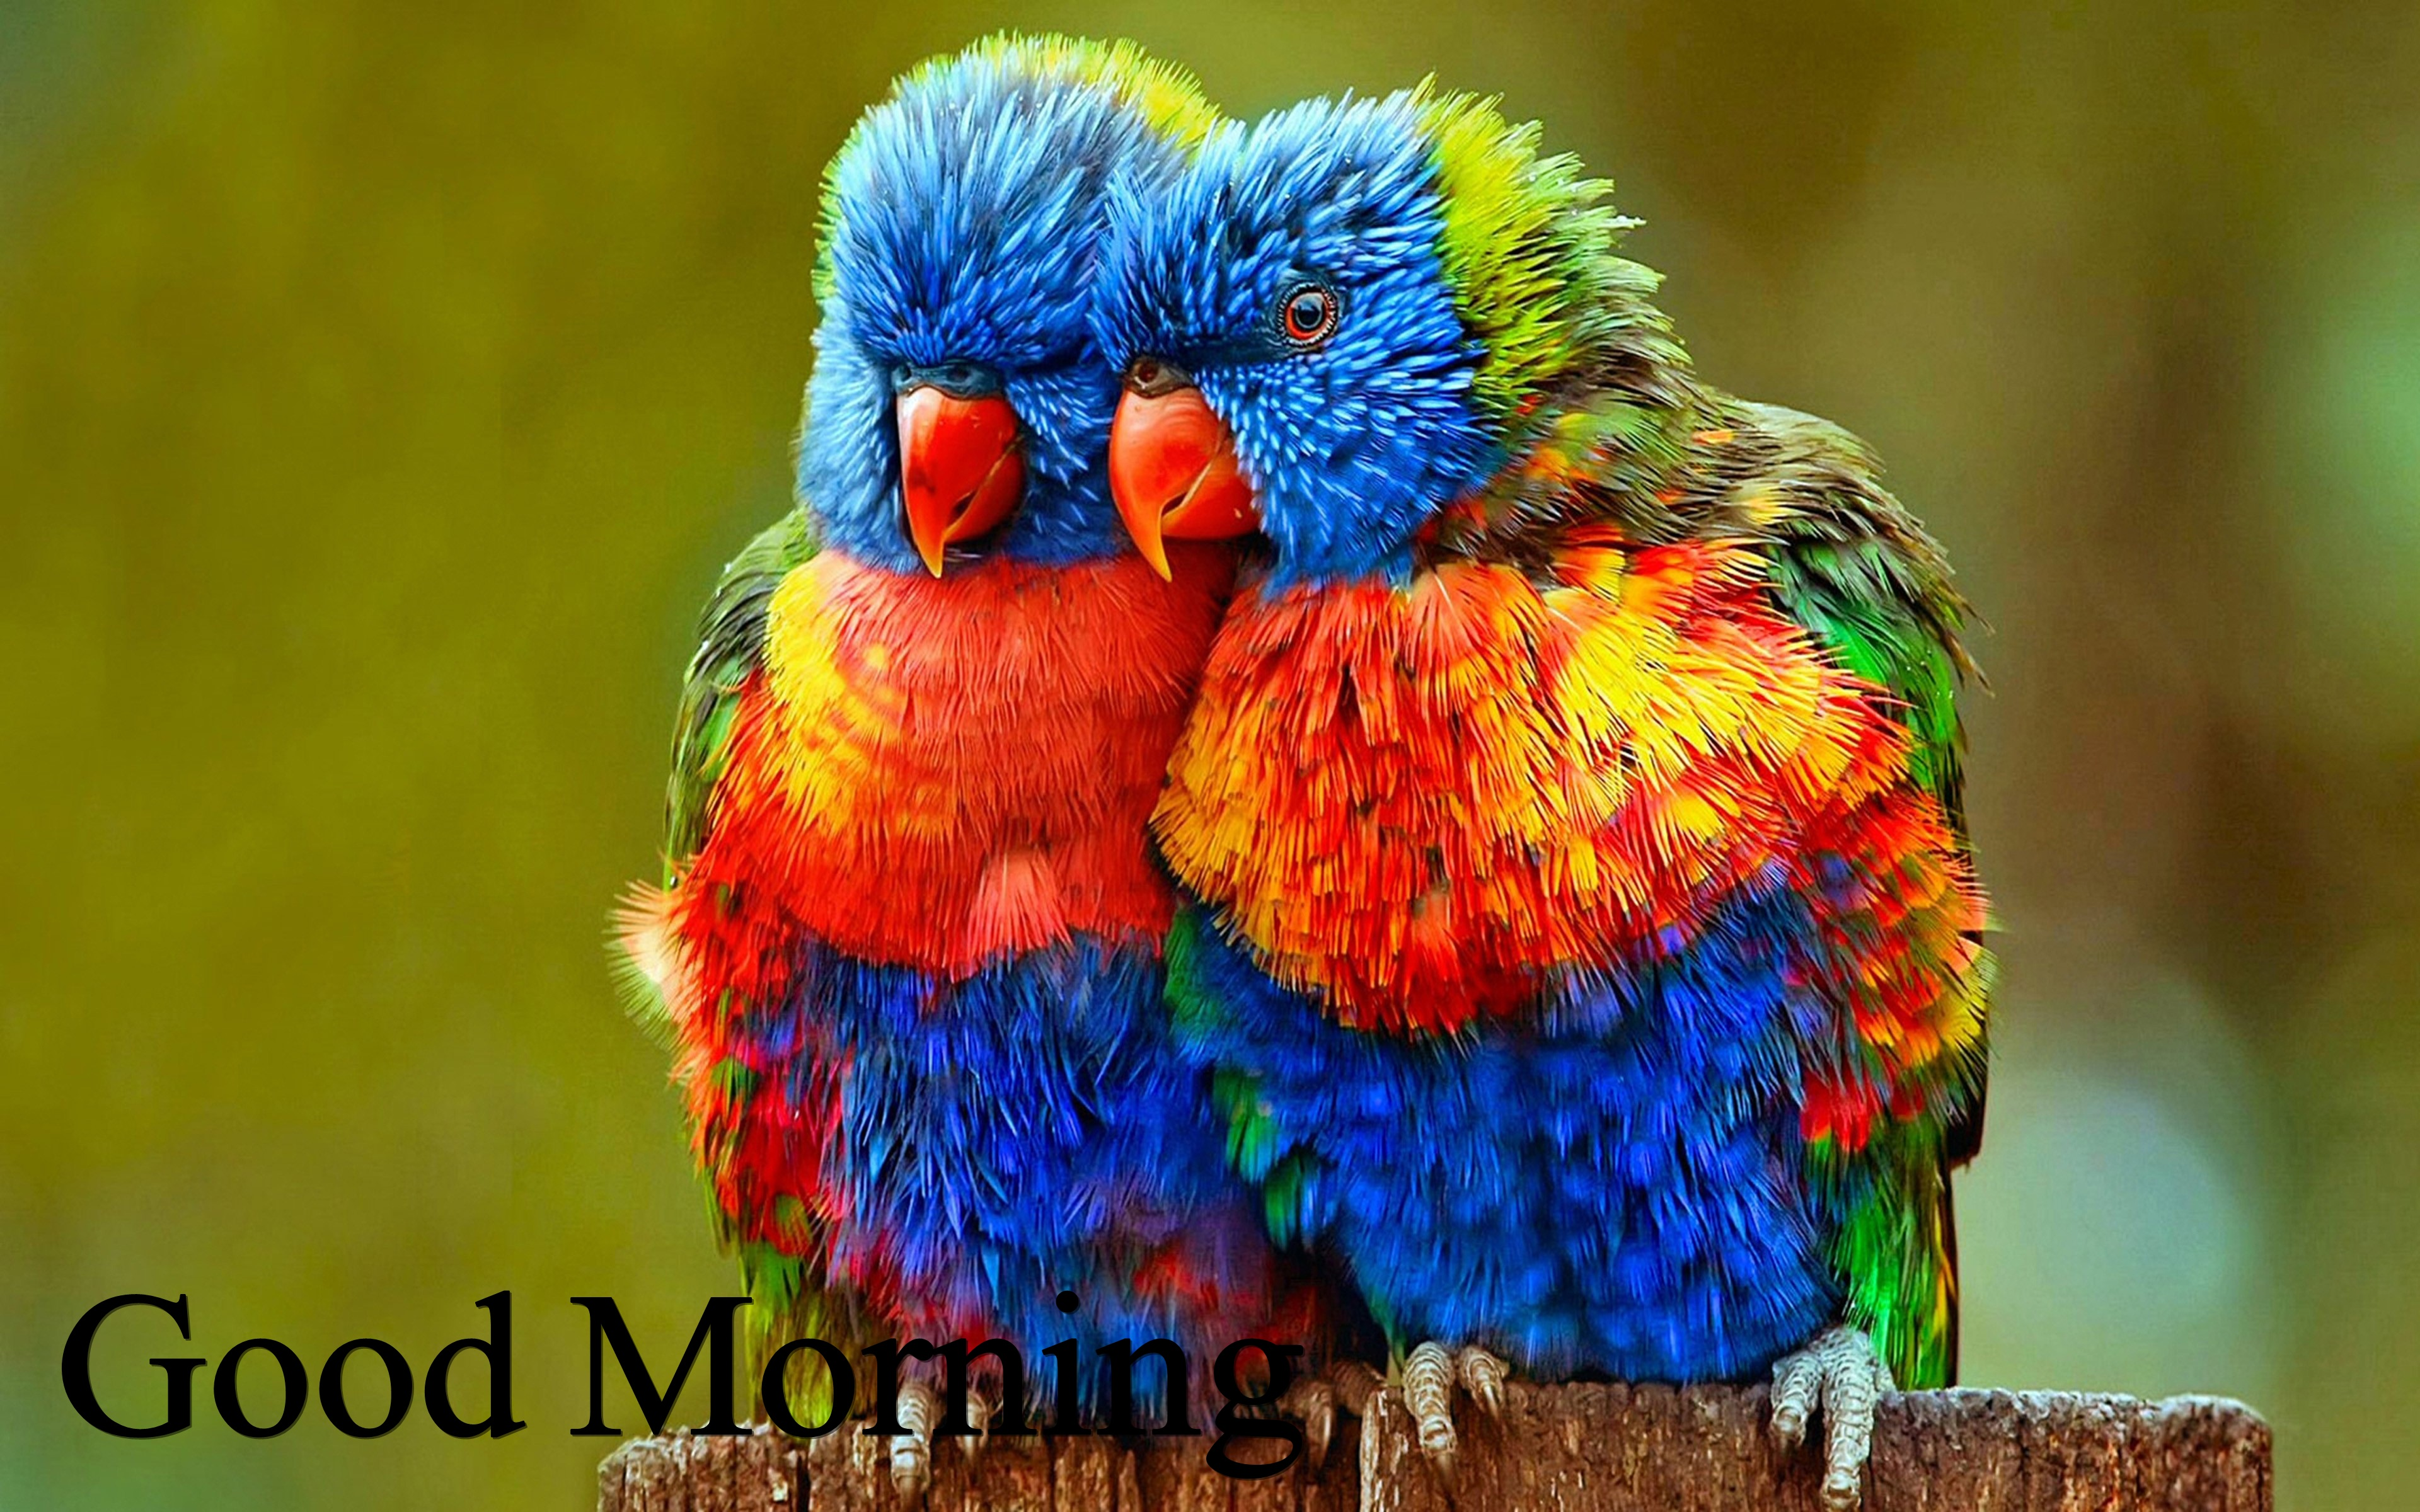 Good Morning Love Pair Birds Hd Wallpapers Full Hd Love Bird